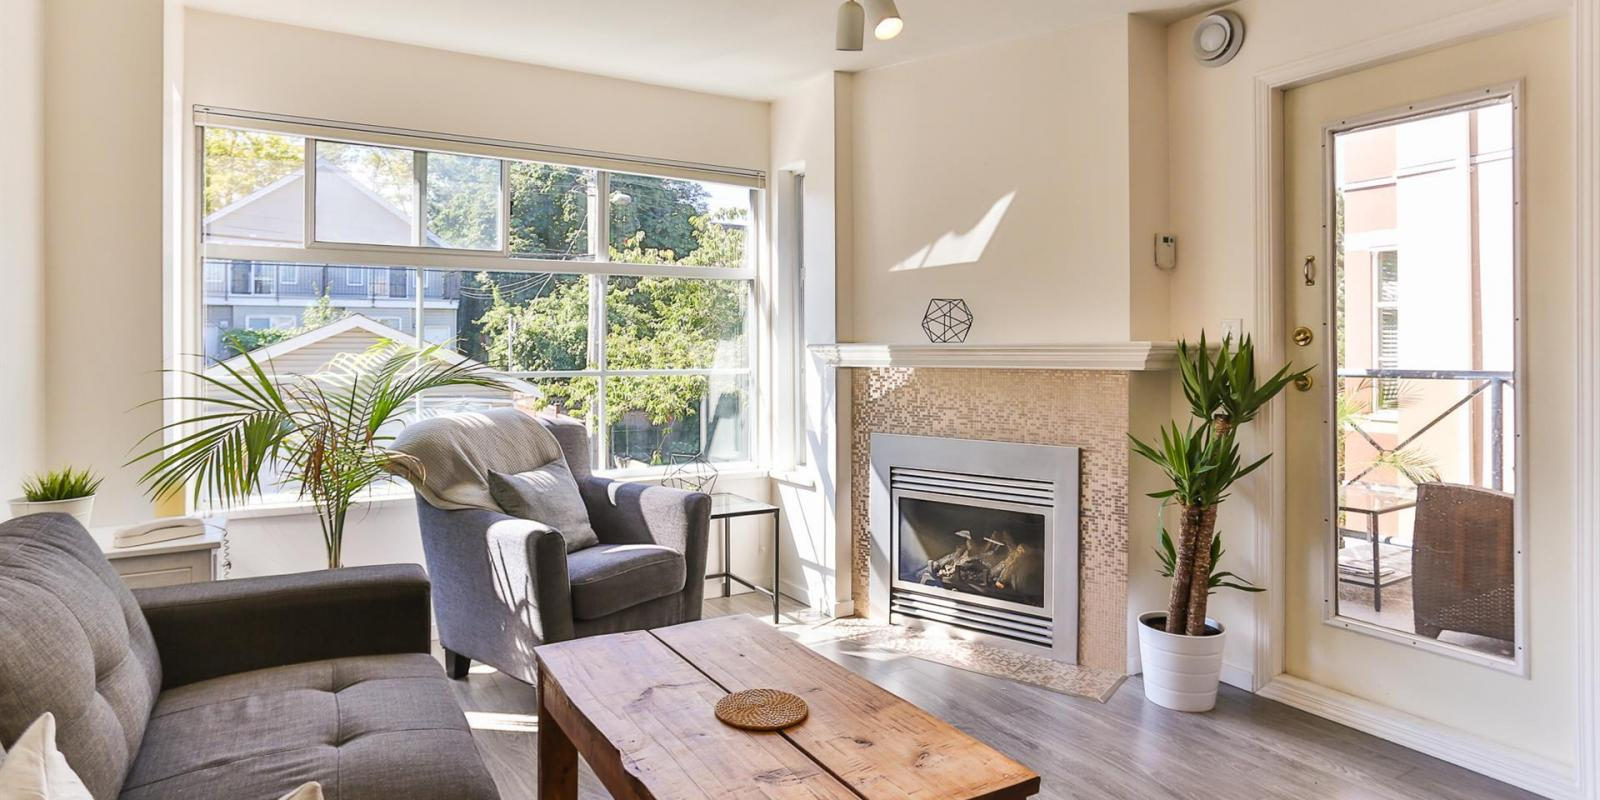 302 - 2388 Triumph Street, Hastings, Vancouver East